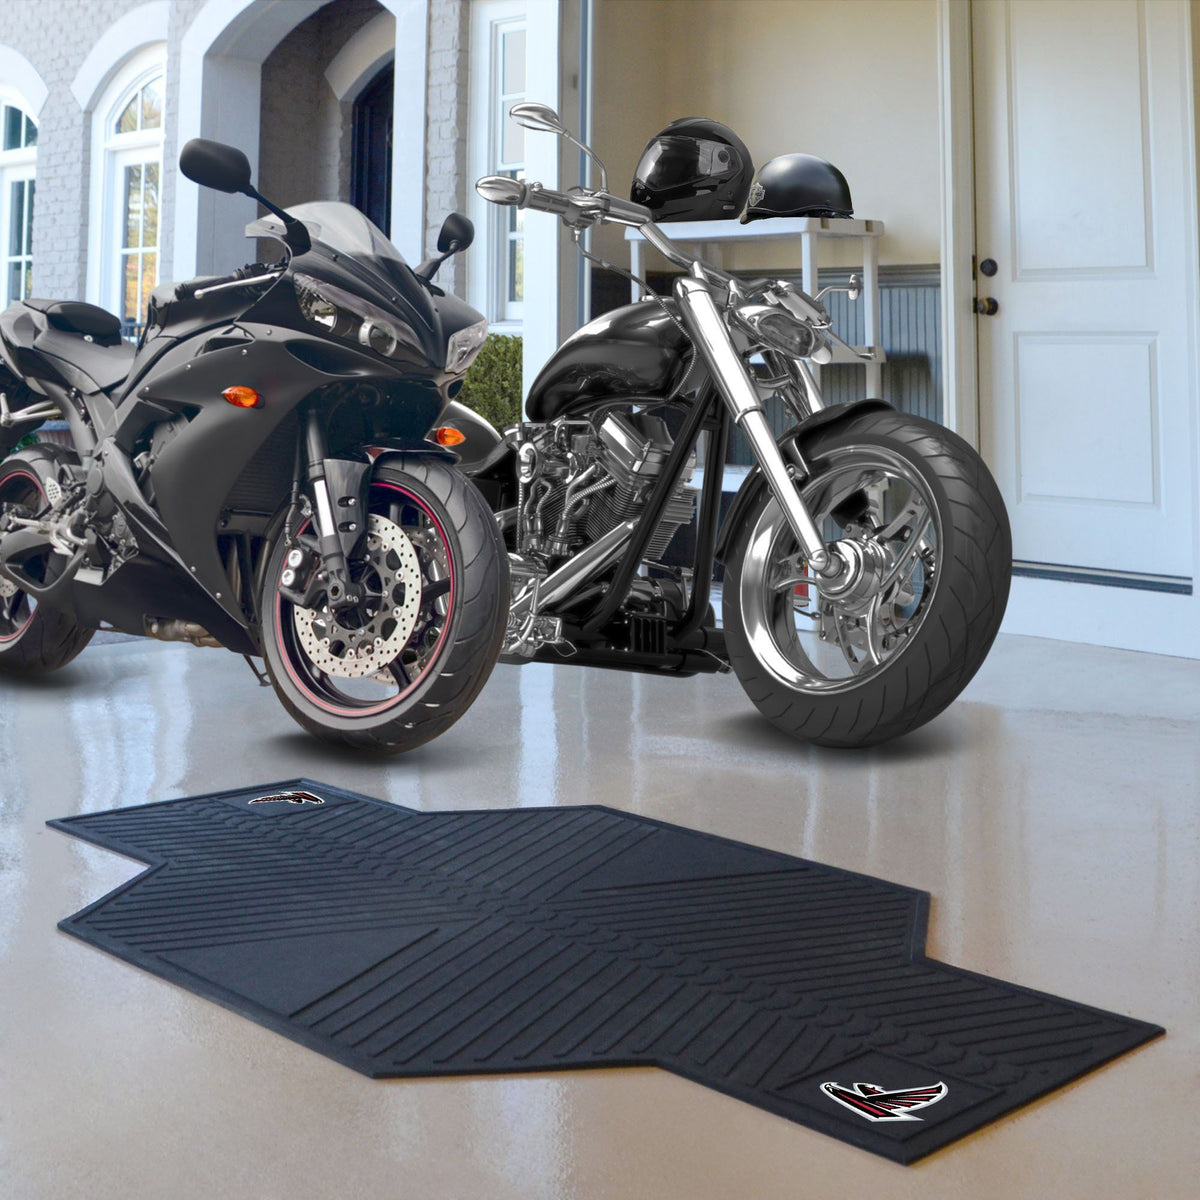 "NFL - Motorcycle Mat, 82.5"" x 42"" NFL Mats, Motorcycle Accessory, Motorcycle Mat, NFL, Auto Fan Mats Atlanta Falcons"